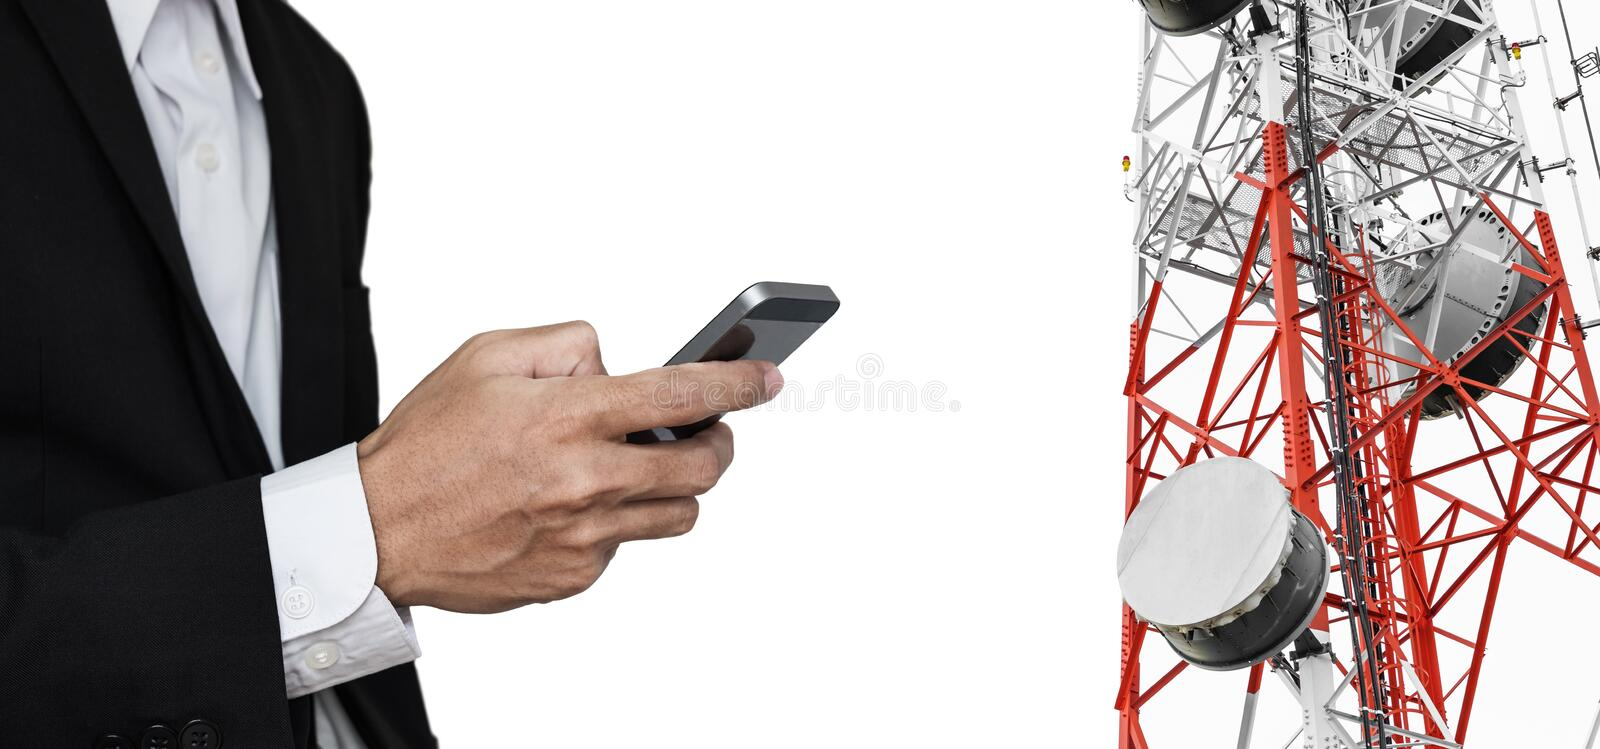 Businessman using mobile phone, with satellite dish telecom network on telecommunication tower, isolated on white background royalty free stock photography